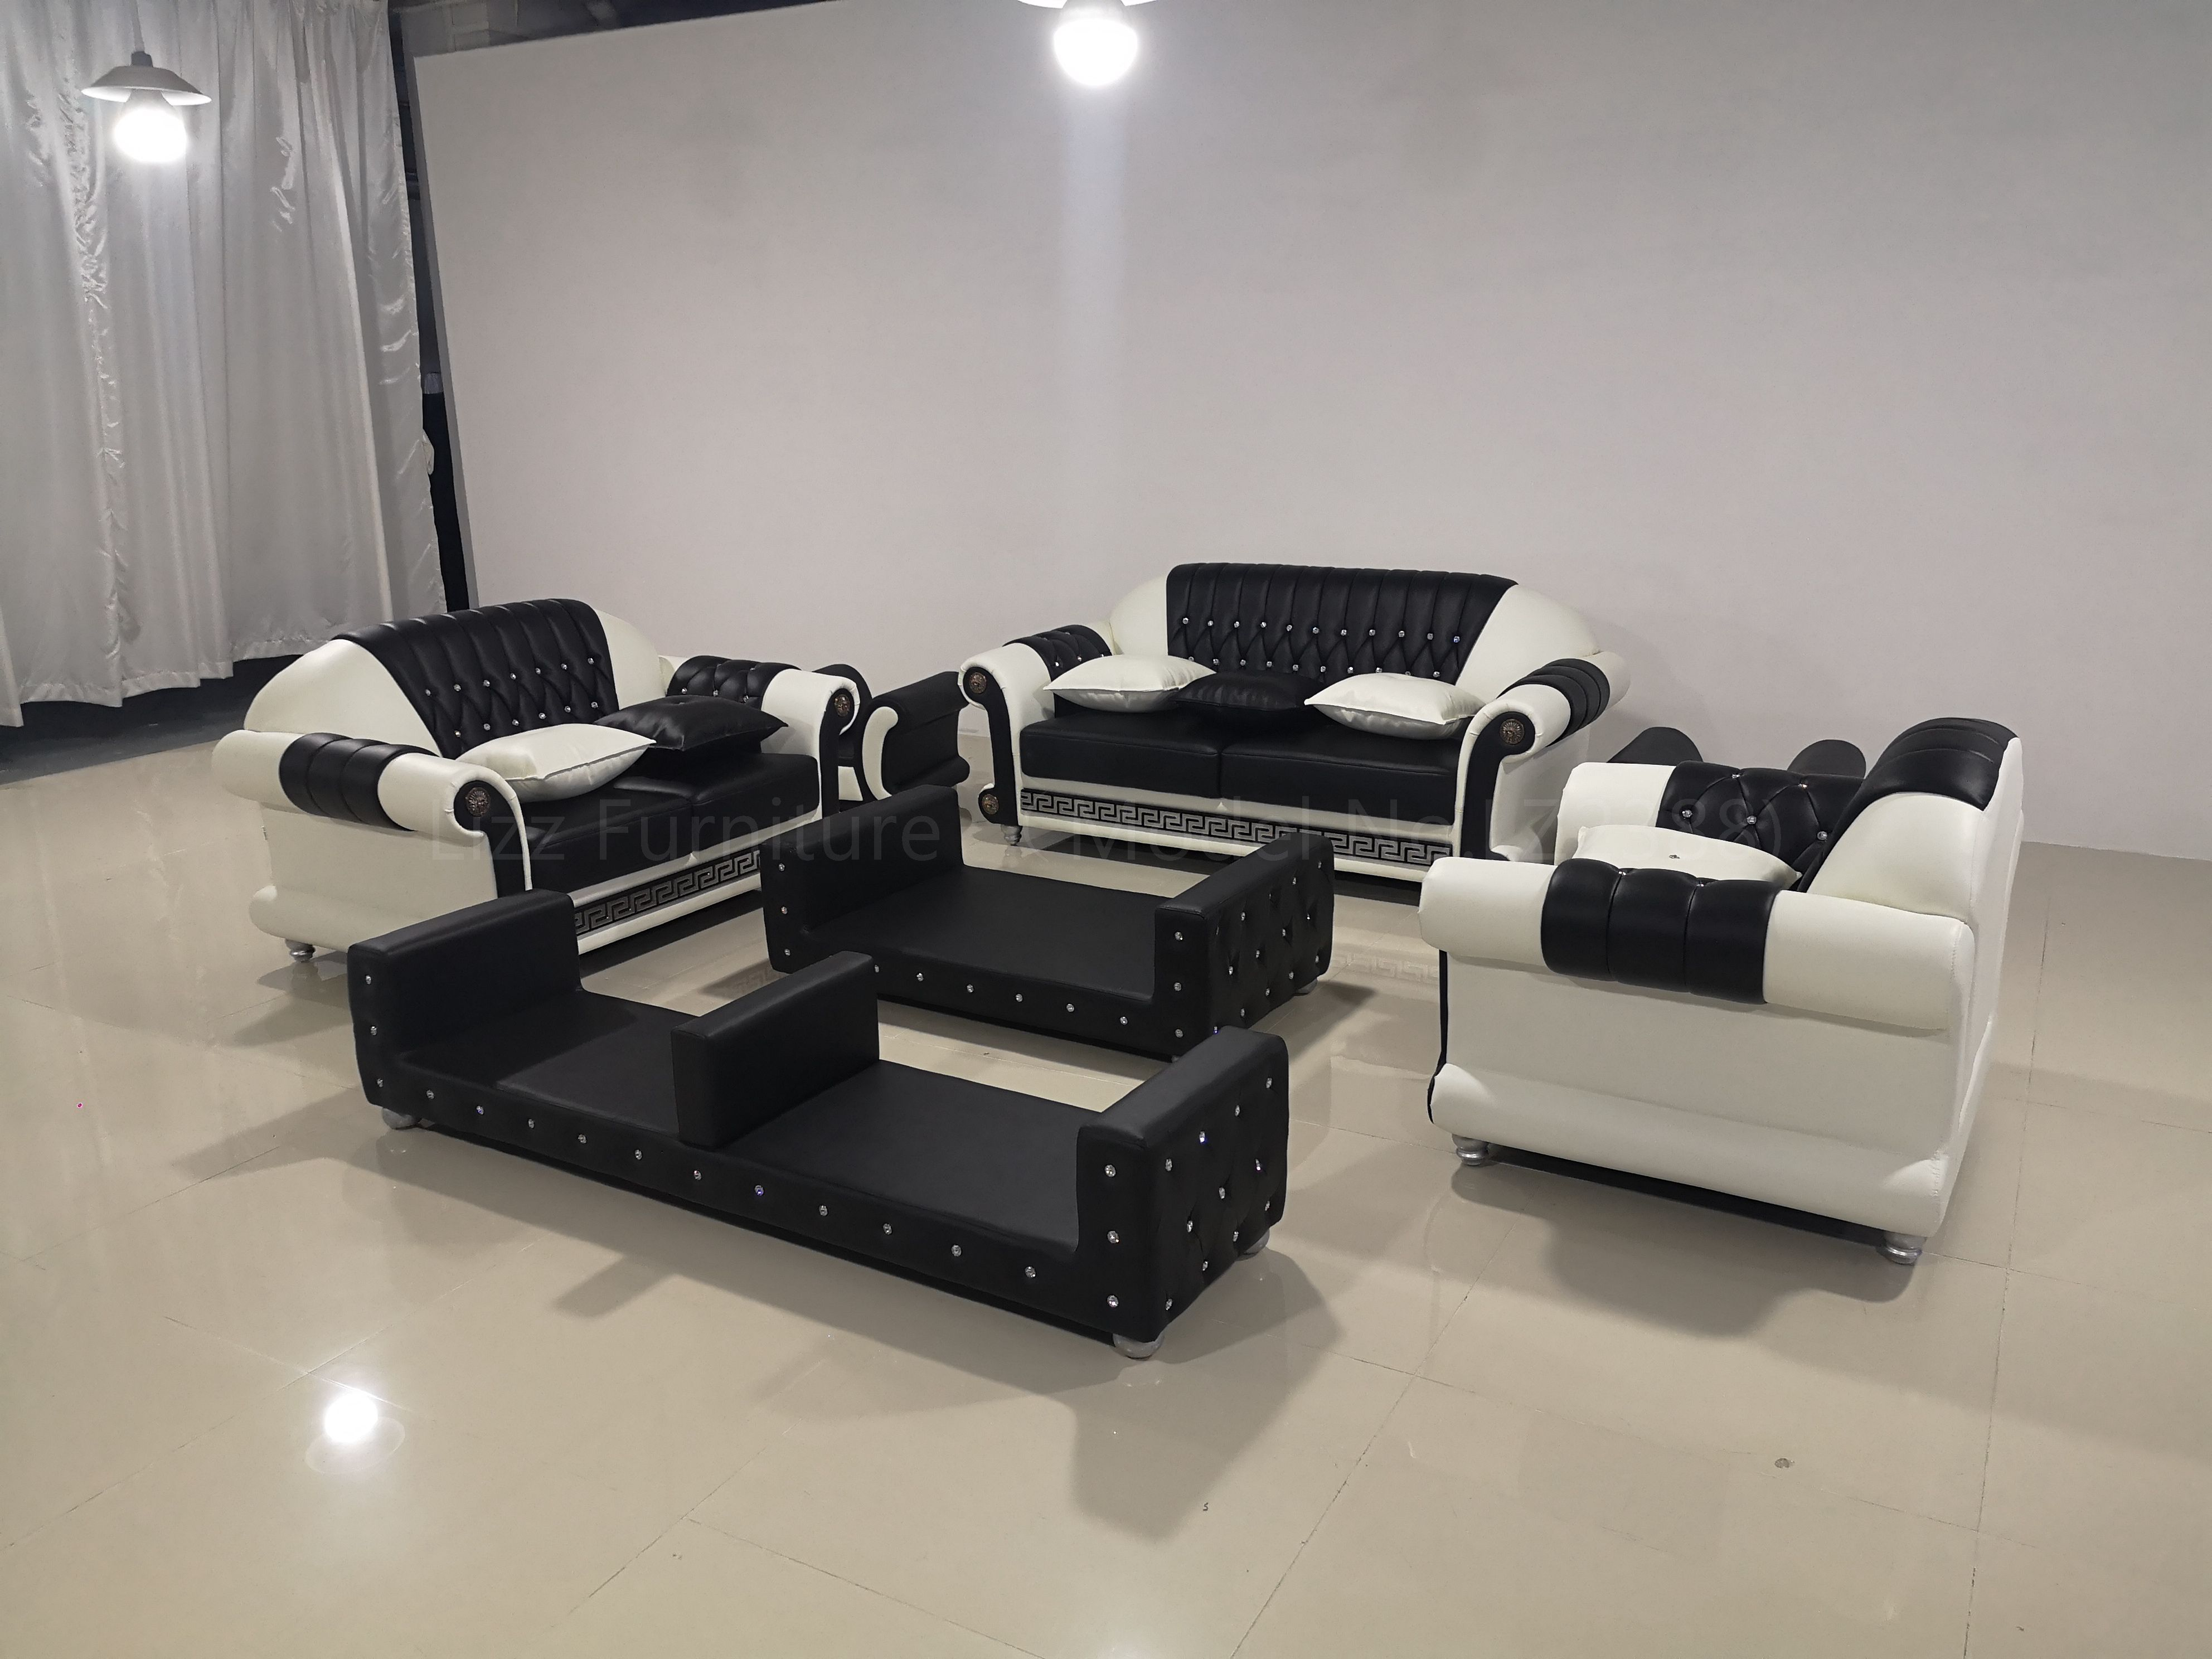 Factory Picture Share Lz2388 Please Contact Me Directly Whatsapp Wechat 8613288219163 Email Amy Lizz Furniture Com Comment Couch Furniture Sectional Couch